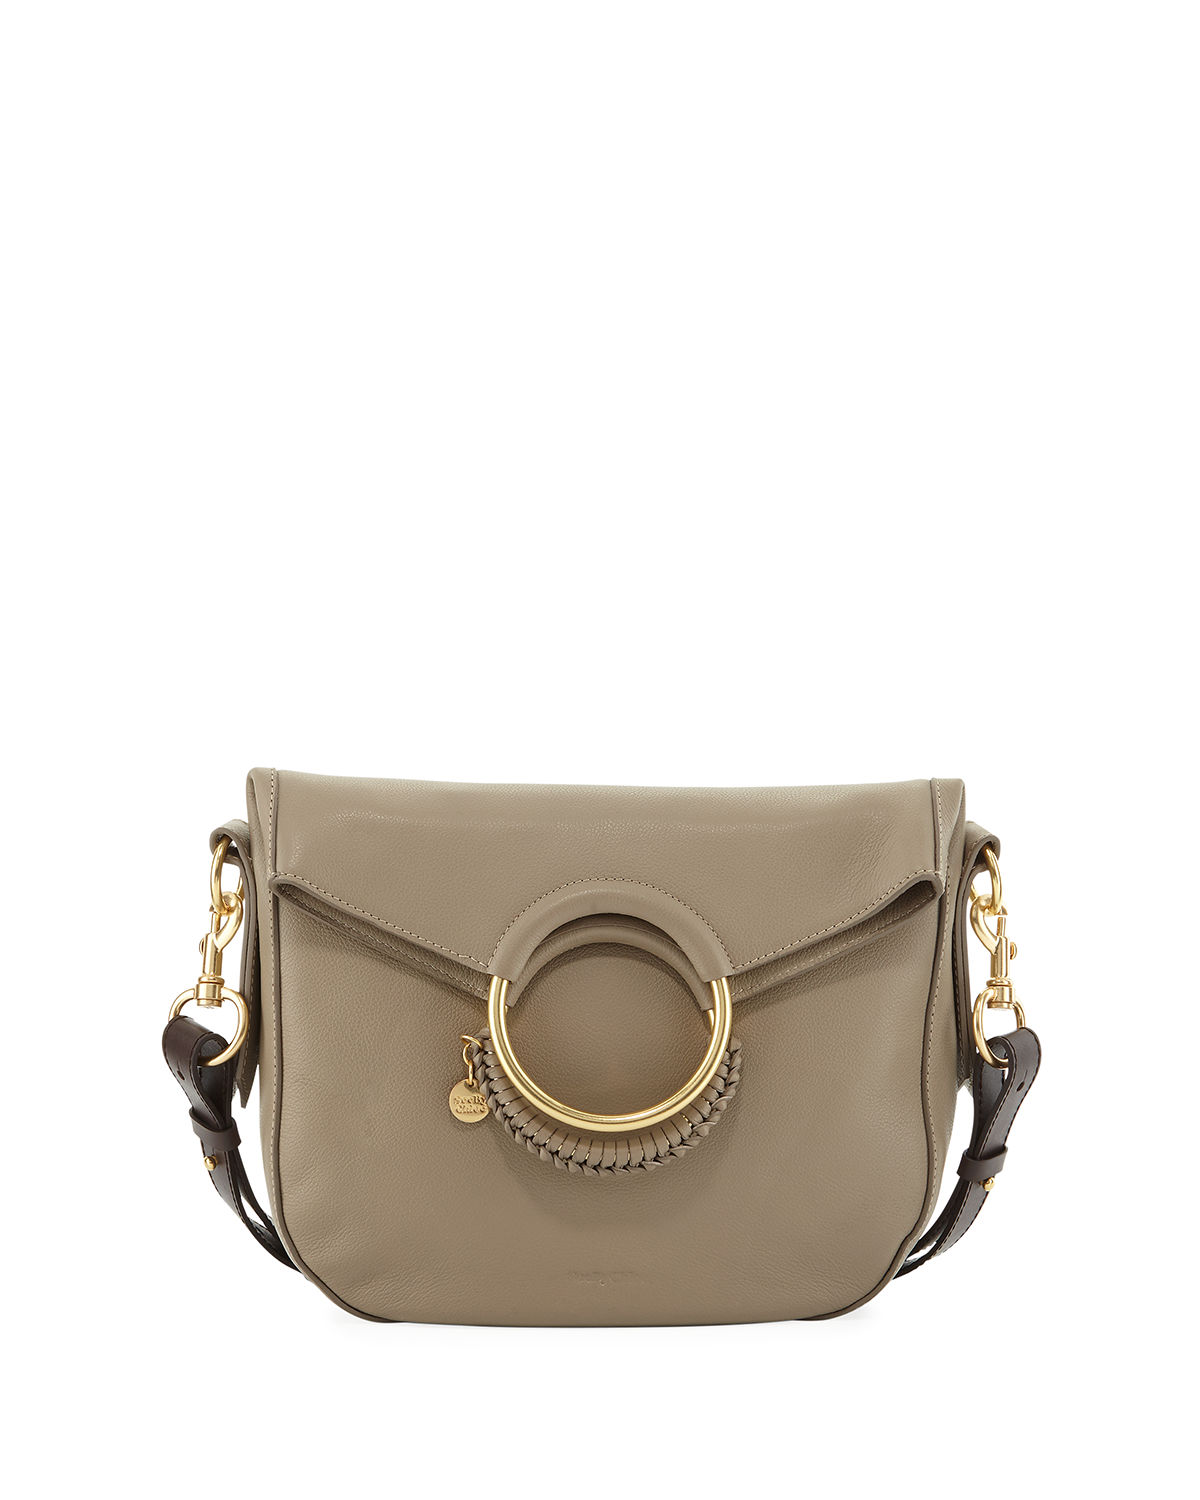 bb139c4823 See by Chloe Monroe Leather Crossbody Bag